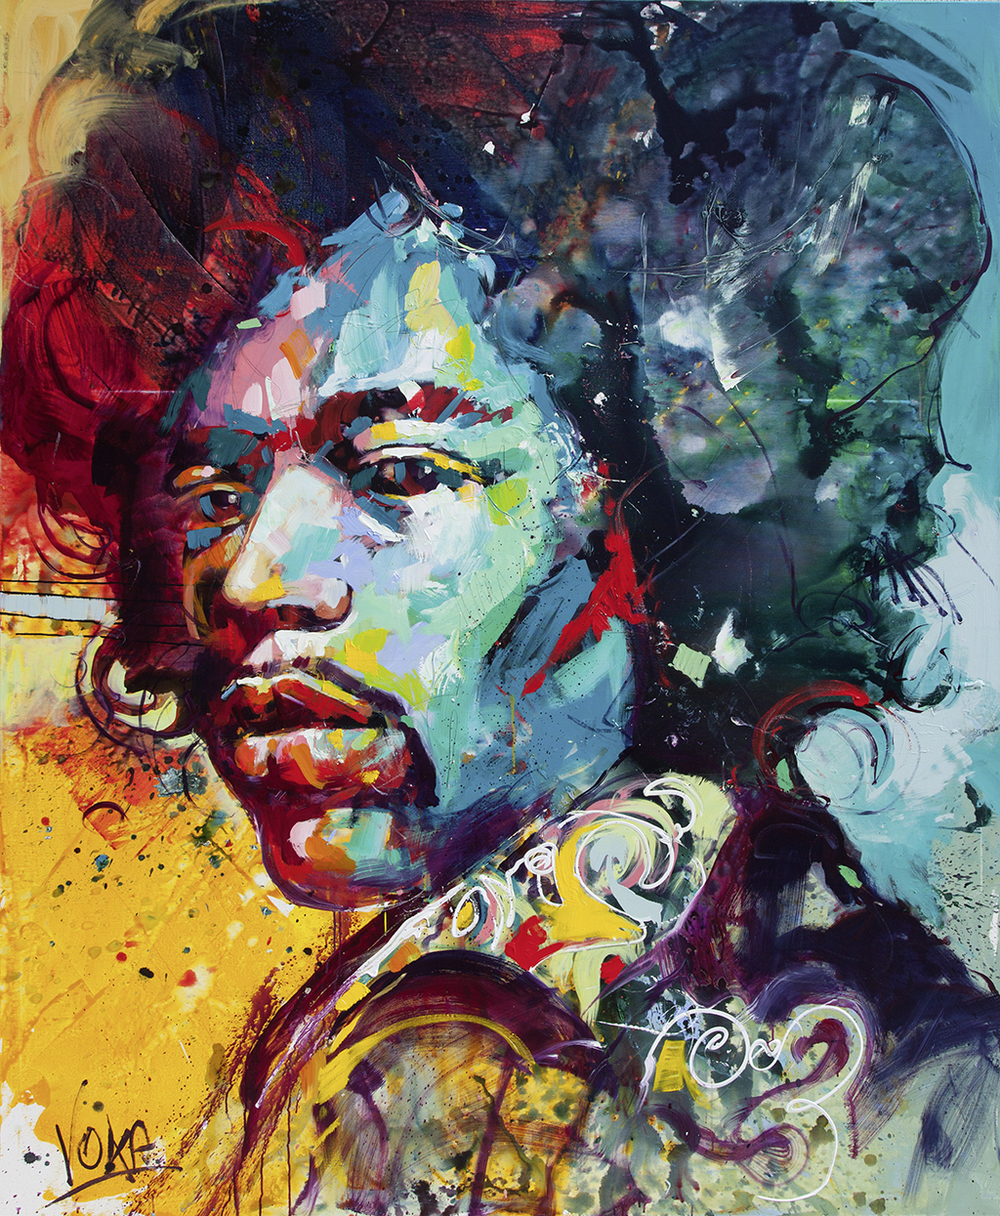 Jimi Hendrix,220x180cm/ 86,6x70,9 inch, acrylic on canvas